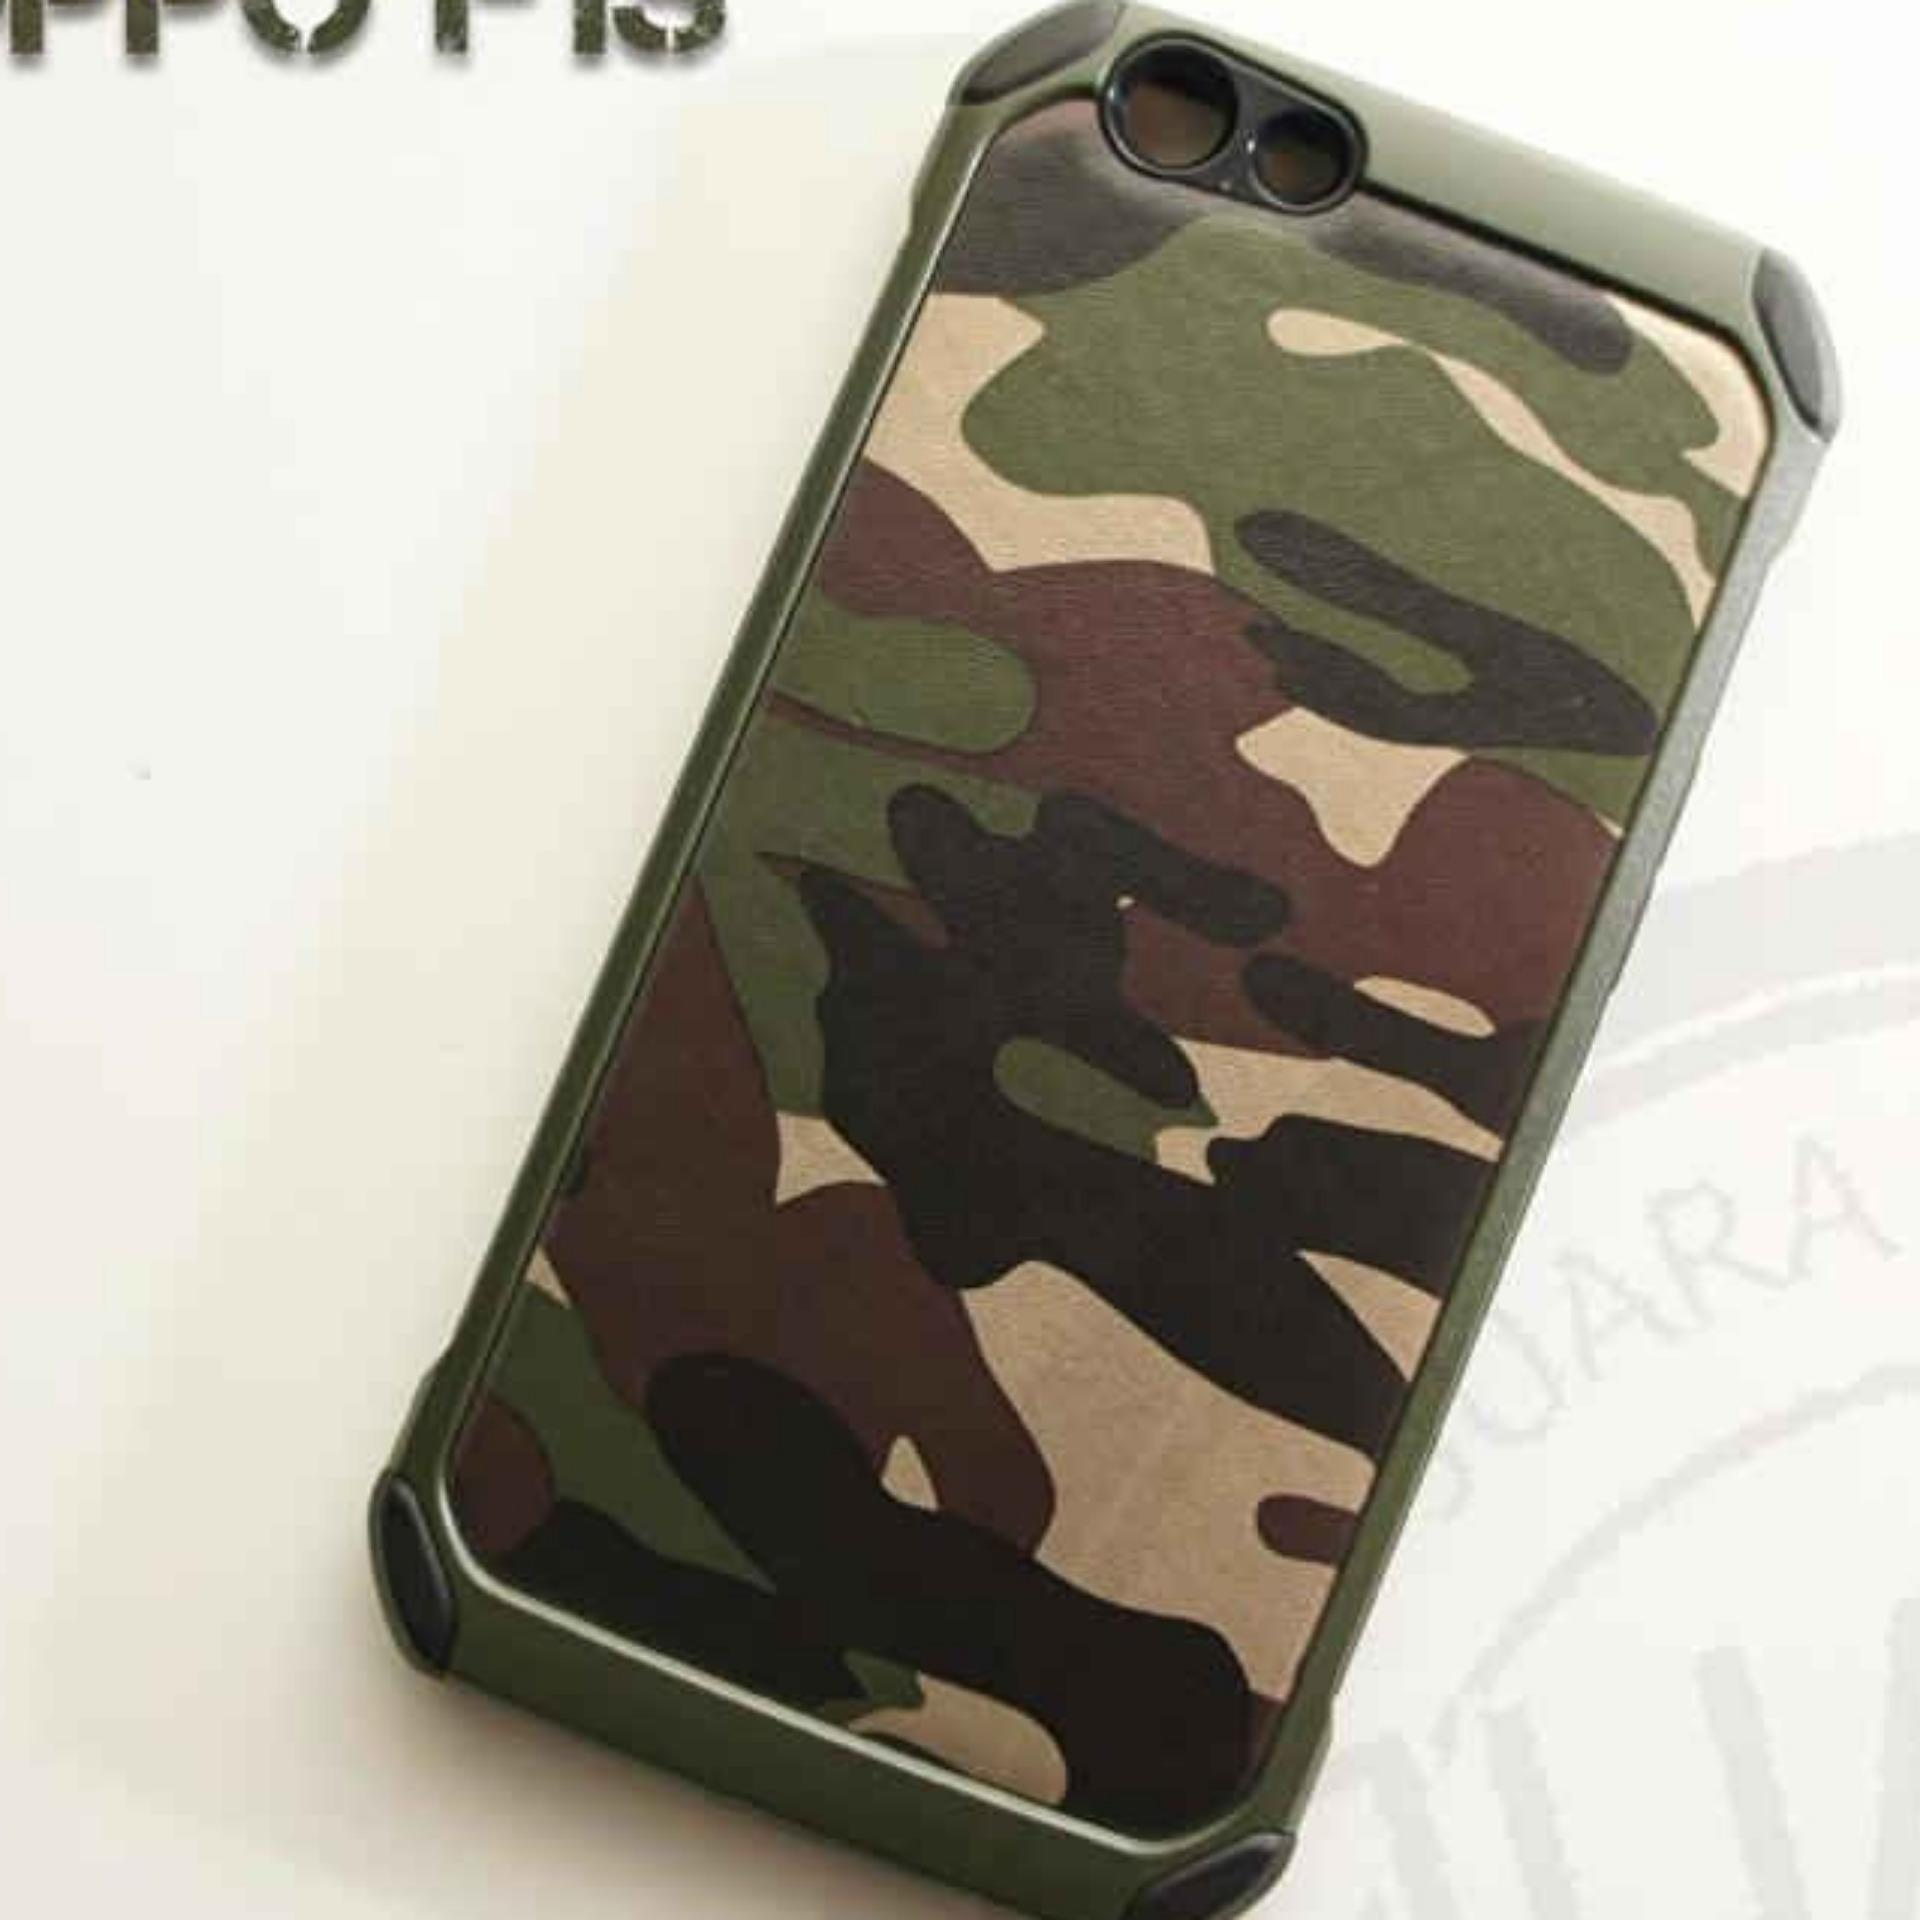 Beli Case Military Army High Protection For Oppo A59 Oppo F1S Army Hijau Case Dengan Harga Terjangkau